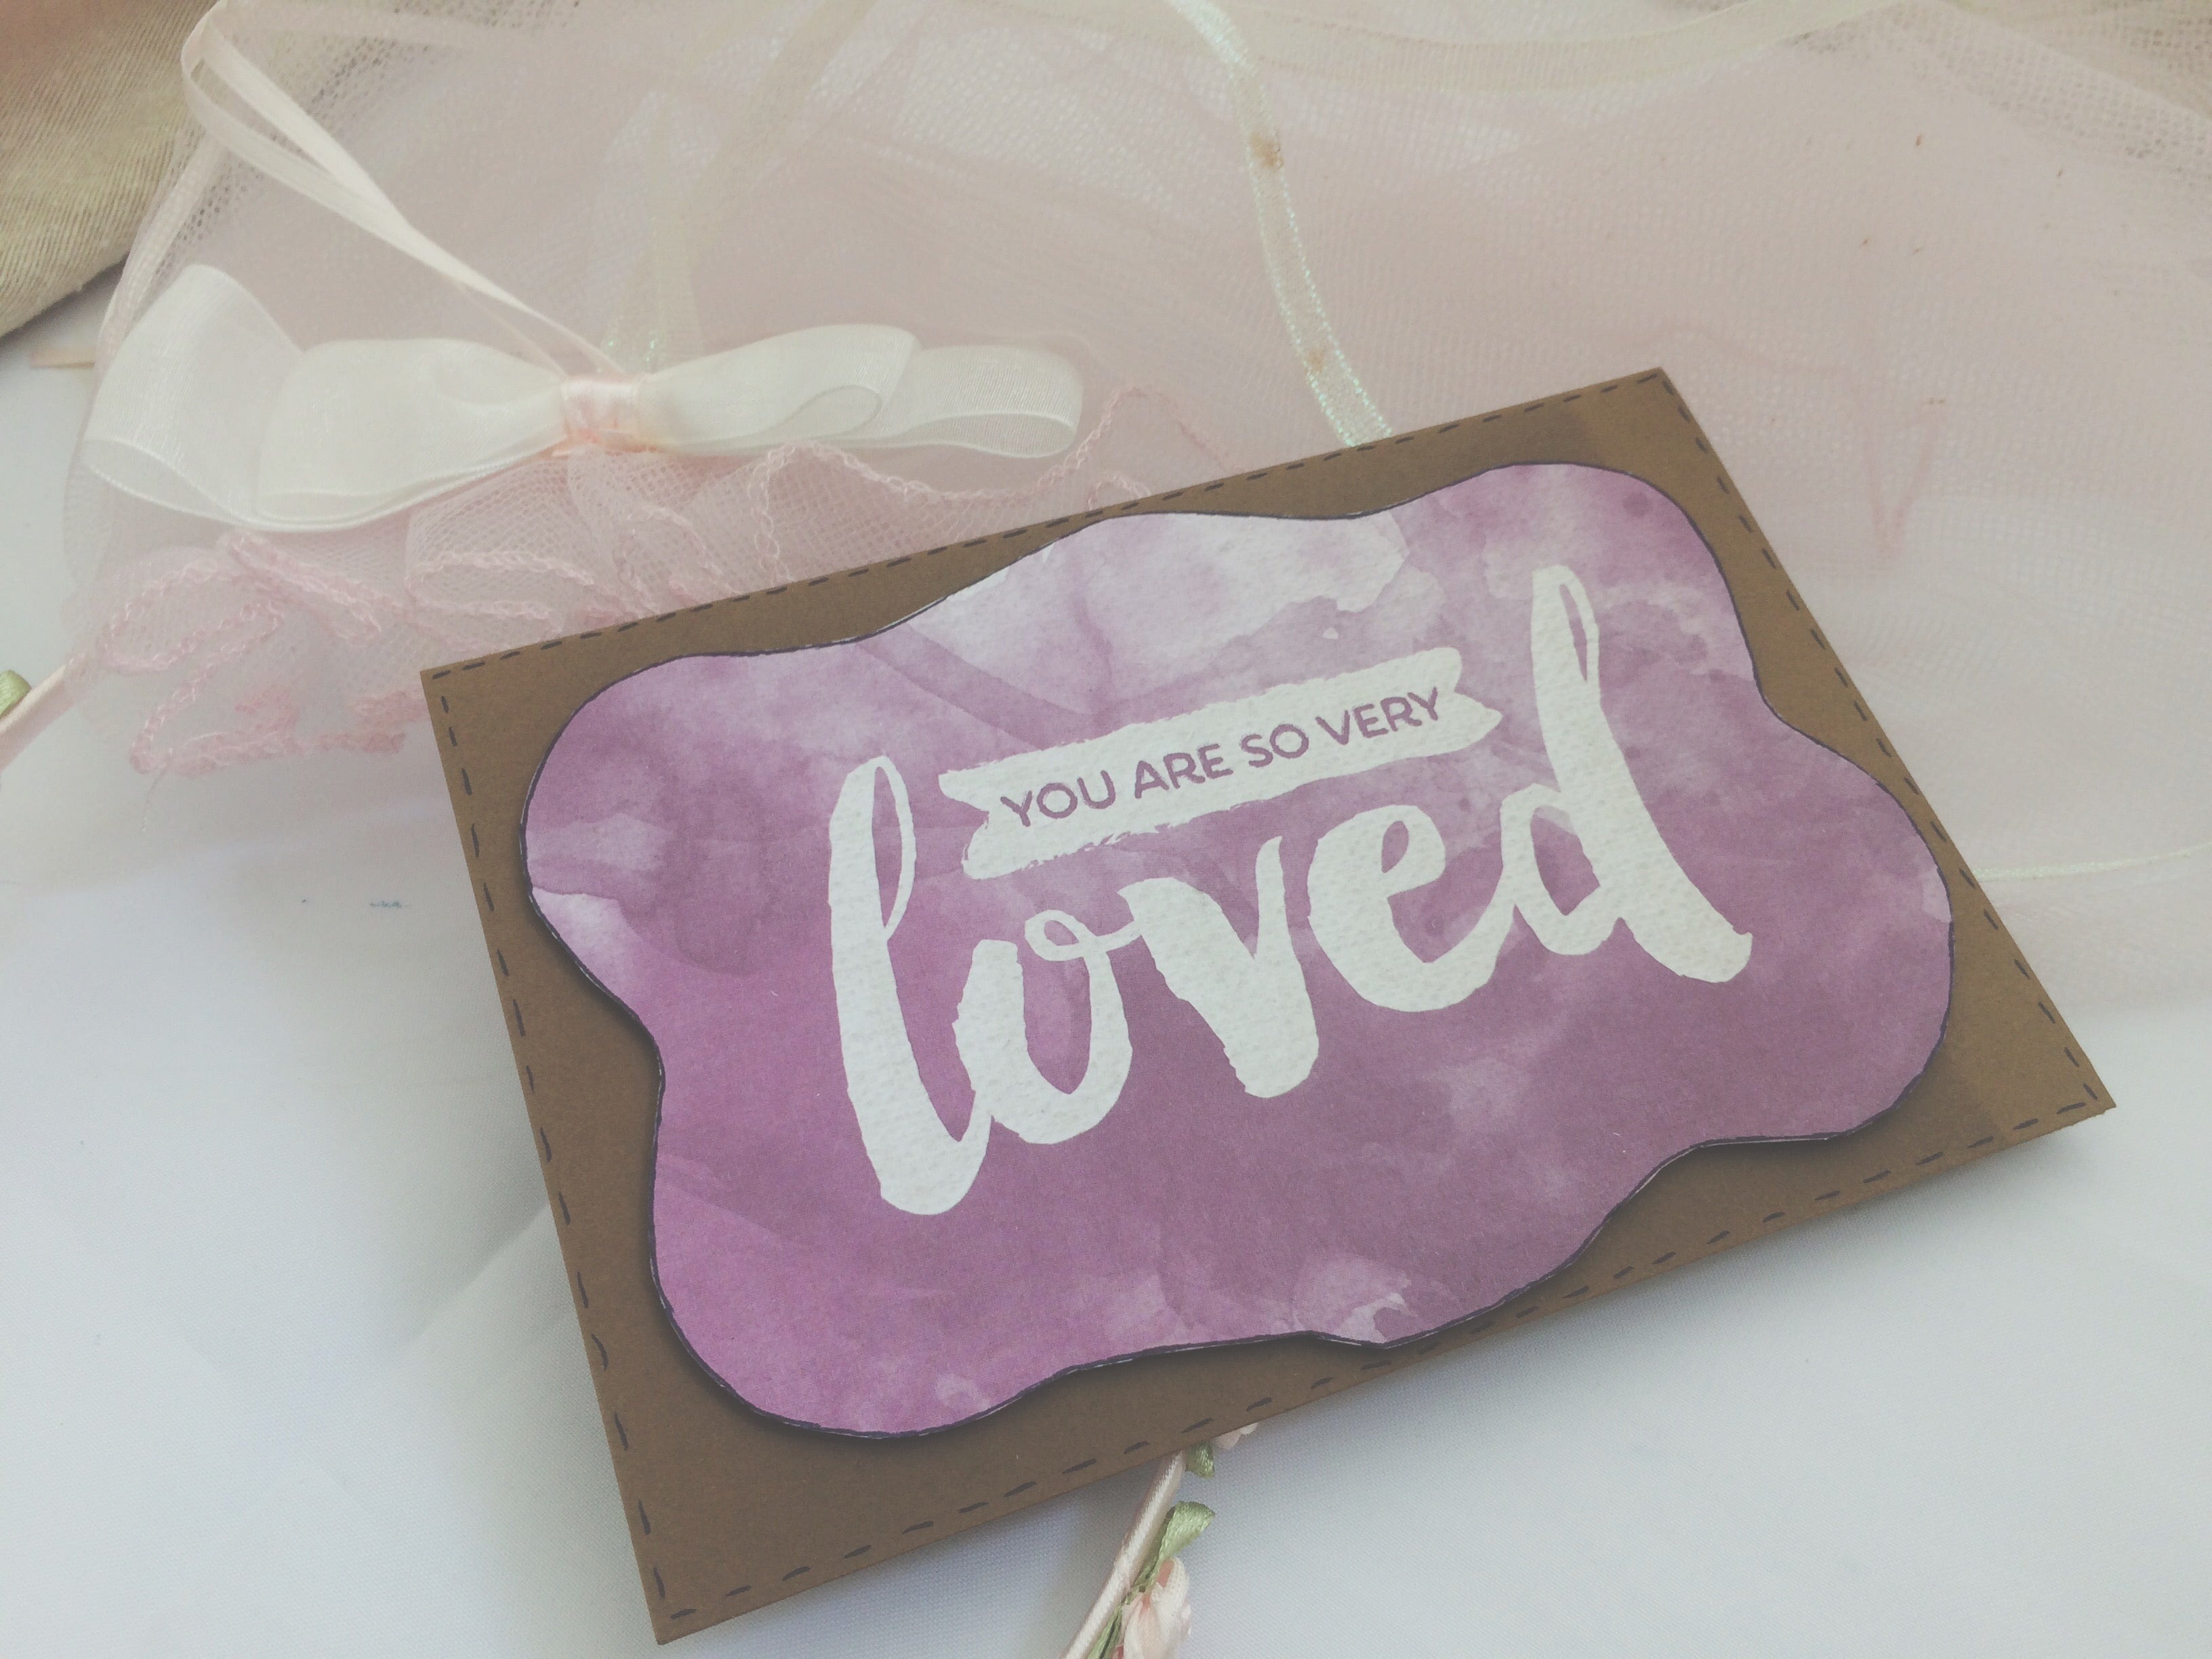 Puddle of Love | Purple Variant | Handmade Valentine's Day | Purple watercolour splotch | You are so very loved sentiment | Thoughtfully Handmade